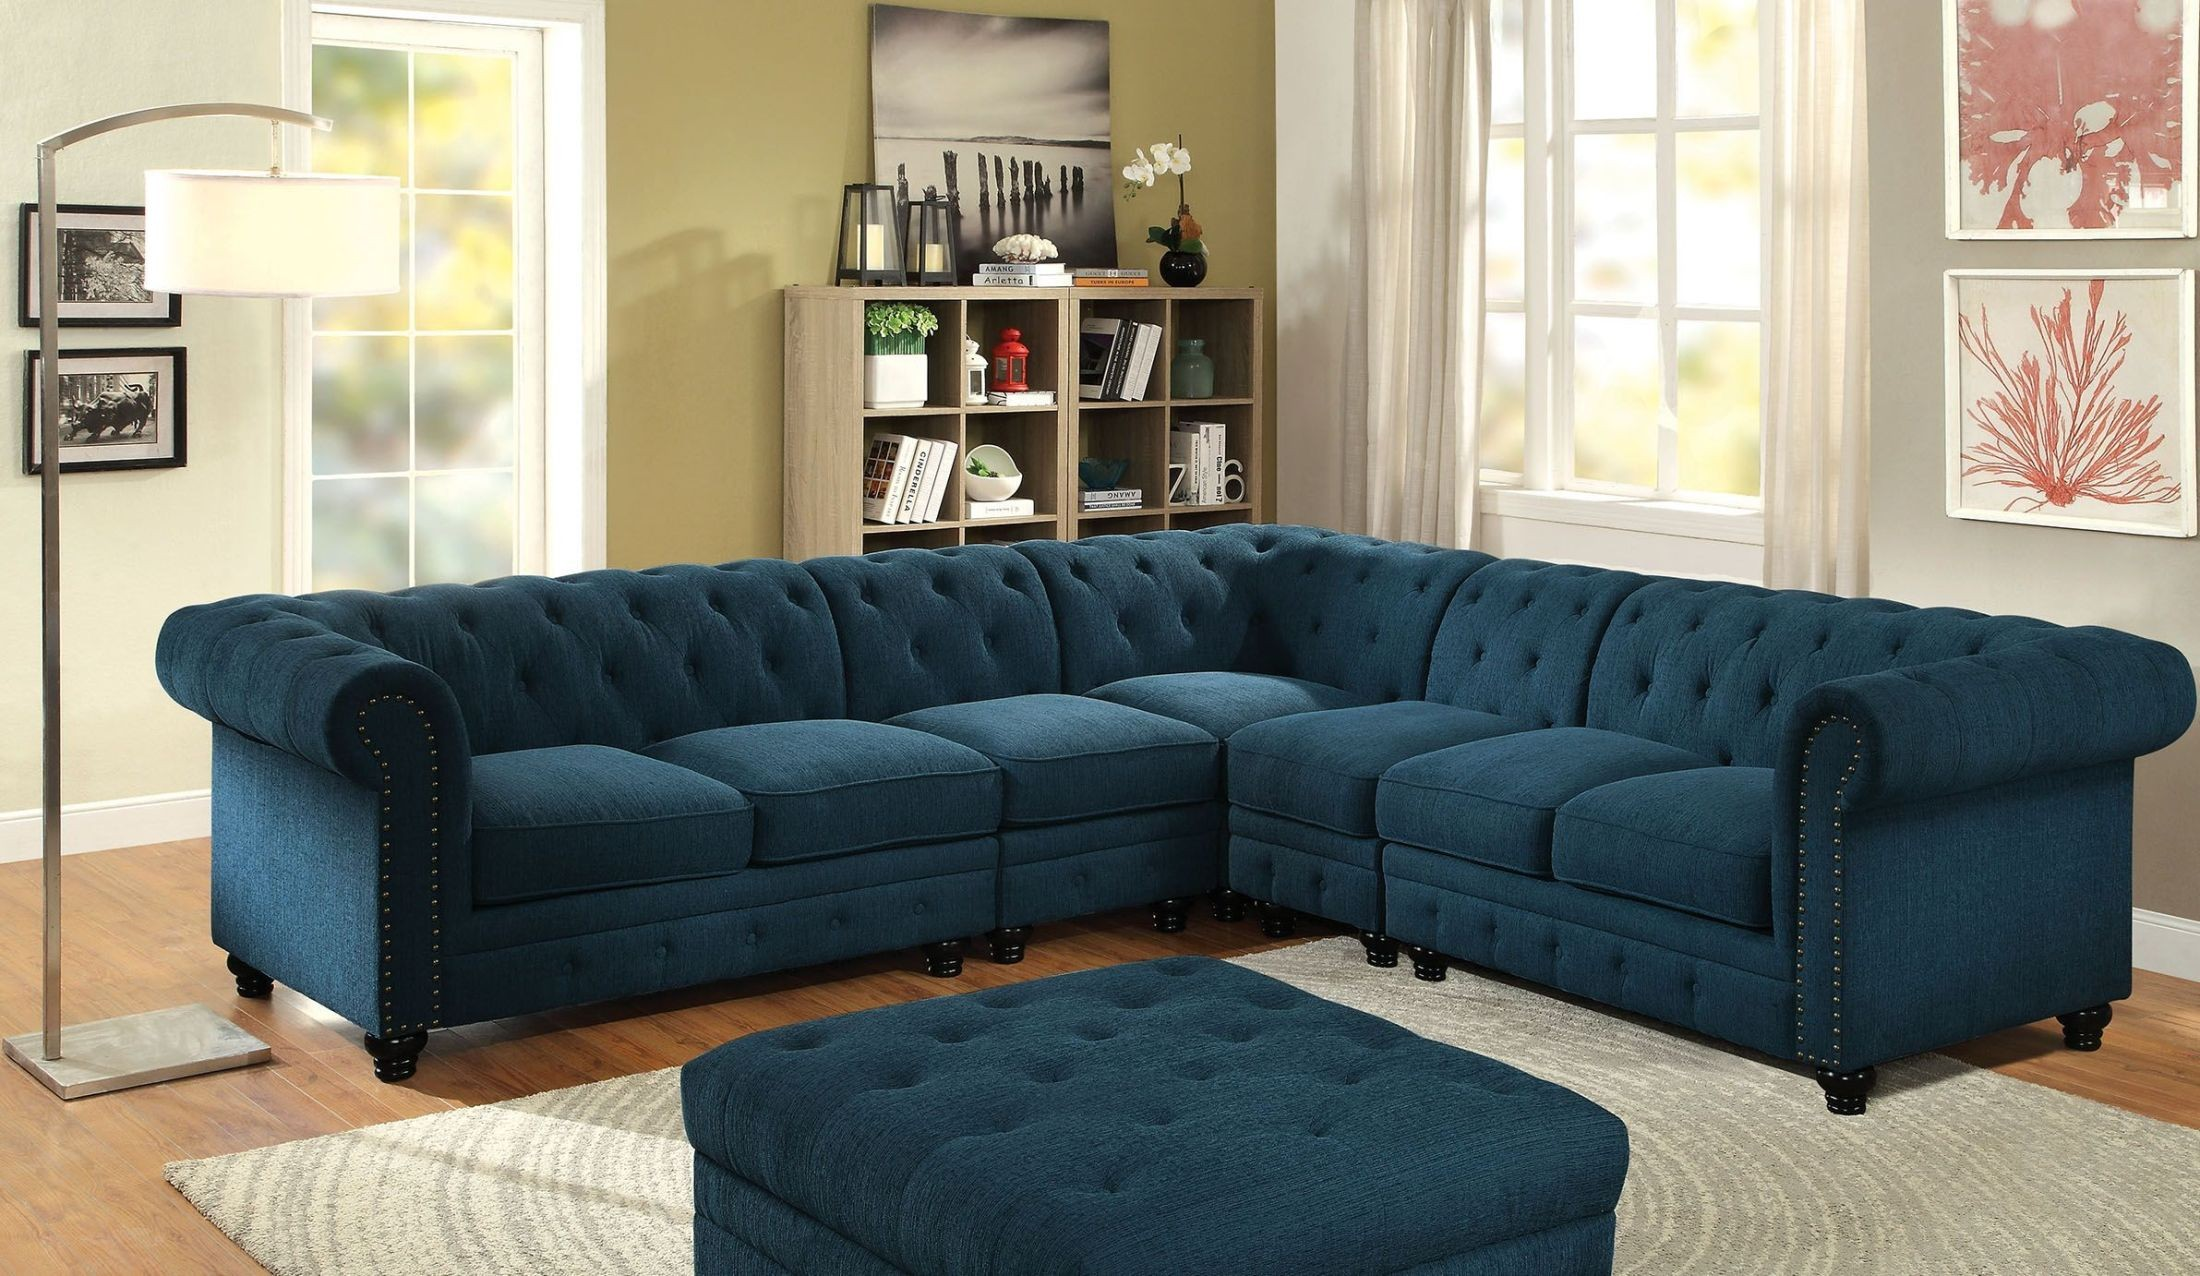 Stanford ii dark teal large sectional 1909192